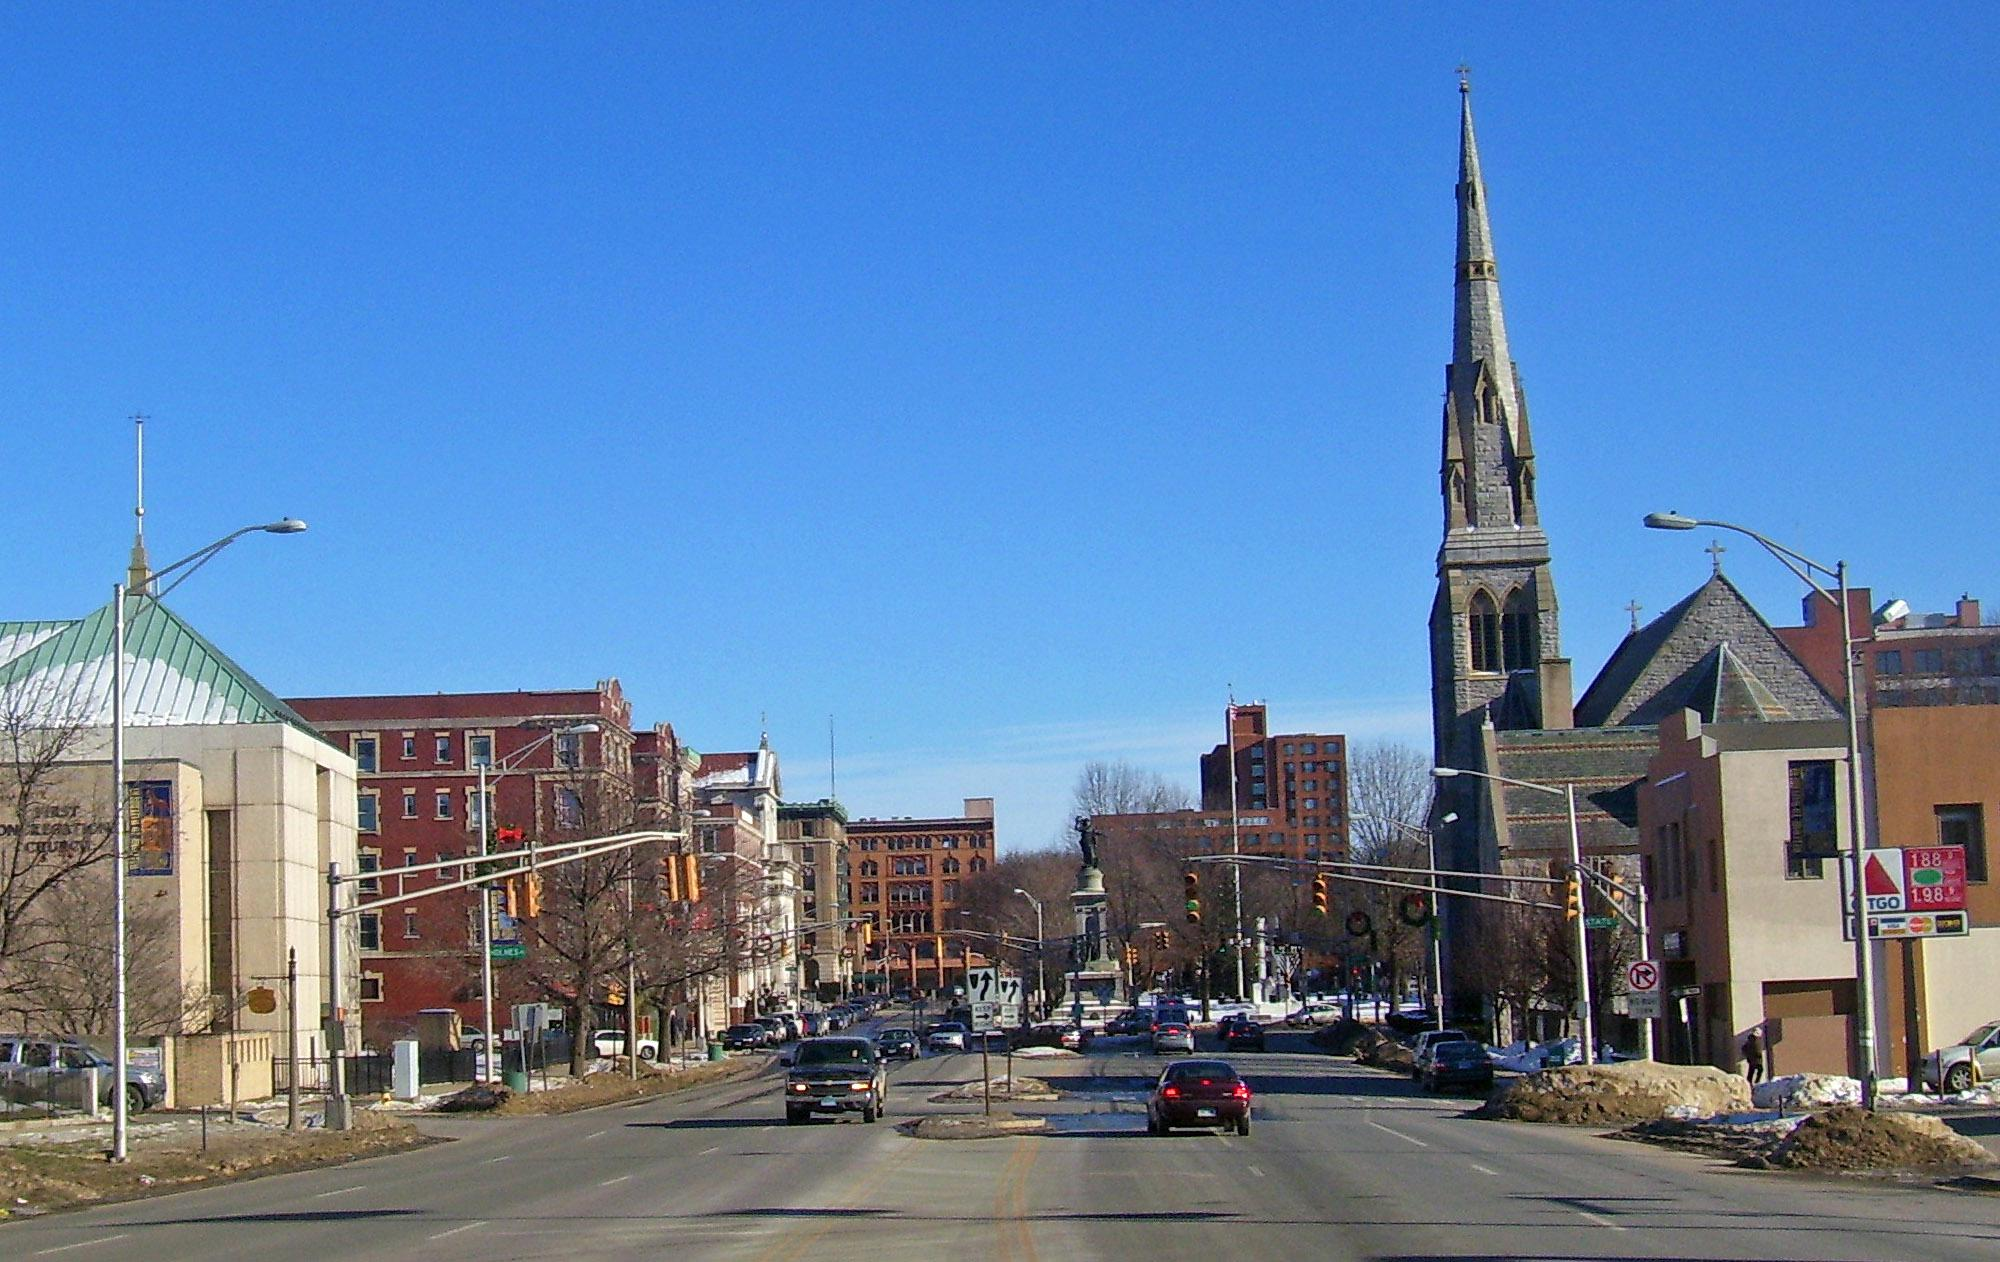 Downtown Waterbury, Connecticut.